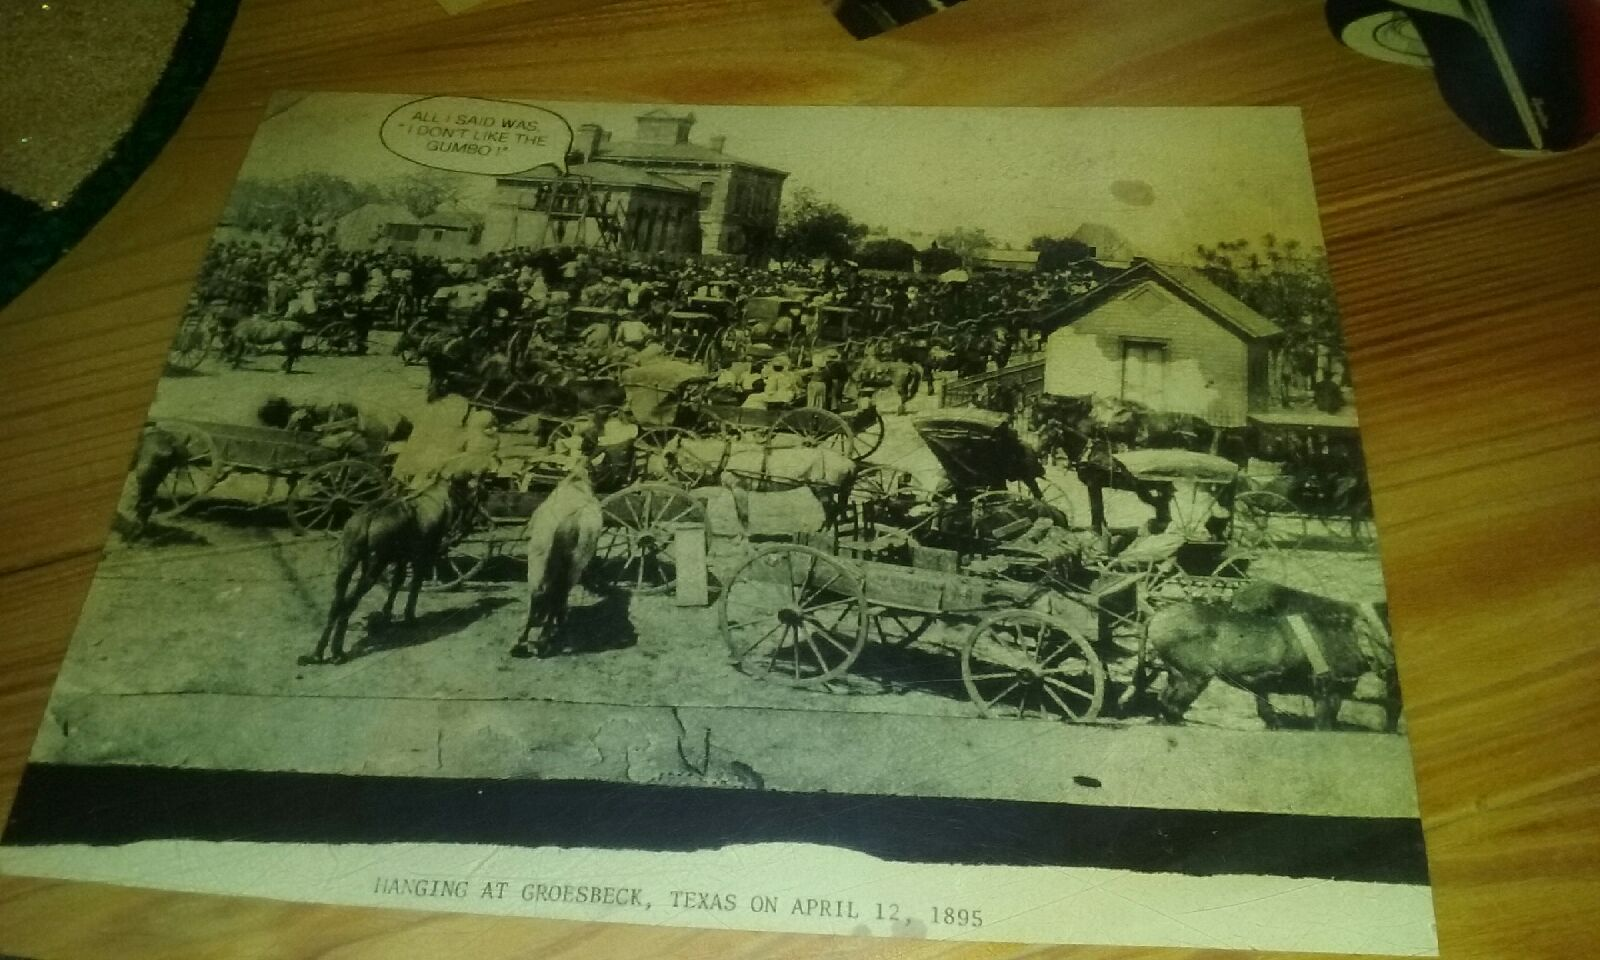 Diners upset Joe's Crab Shack decor features photo of 1895 hanging